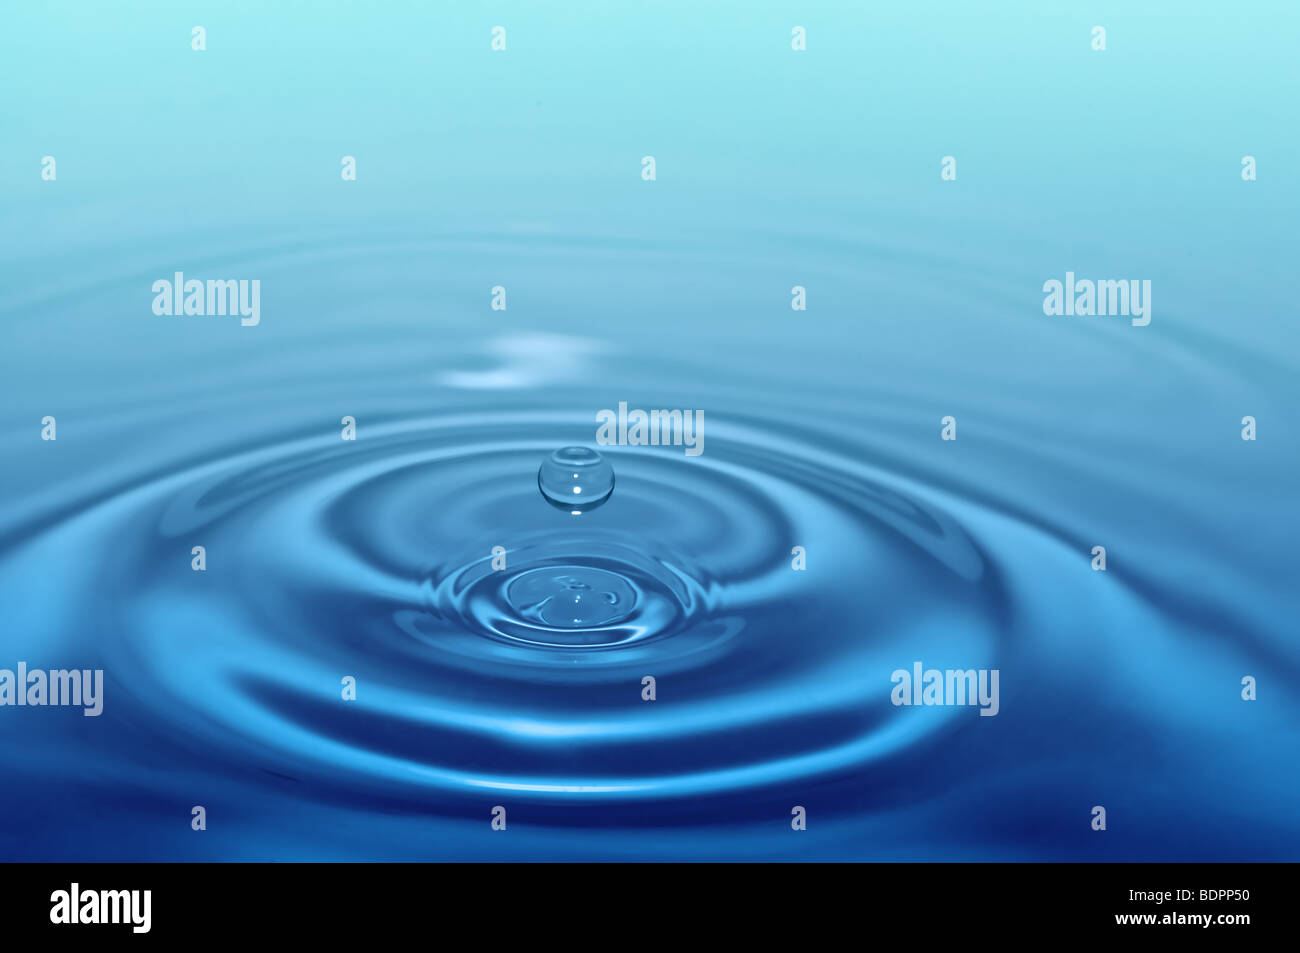 splash water drop for concept design - Stock Image